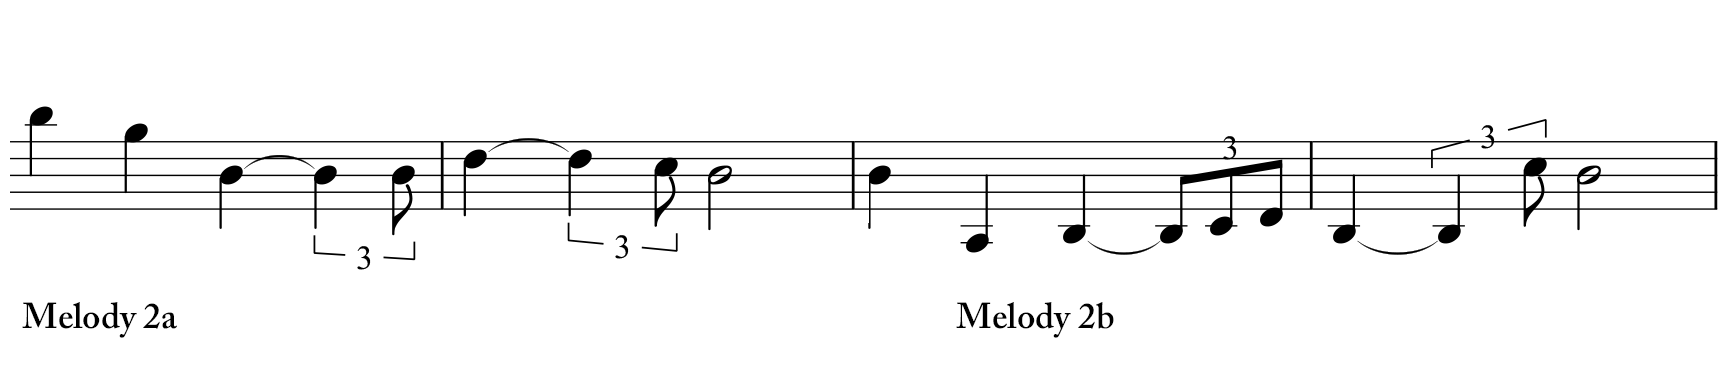 melody-2.png